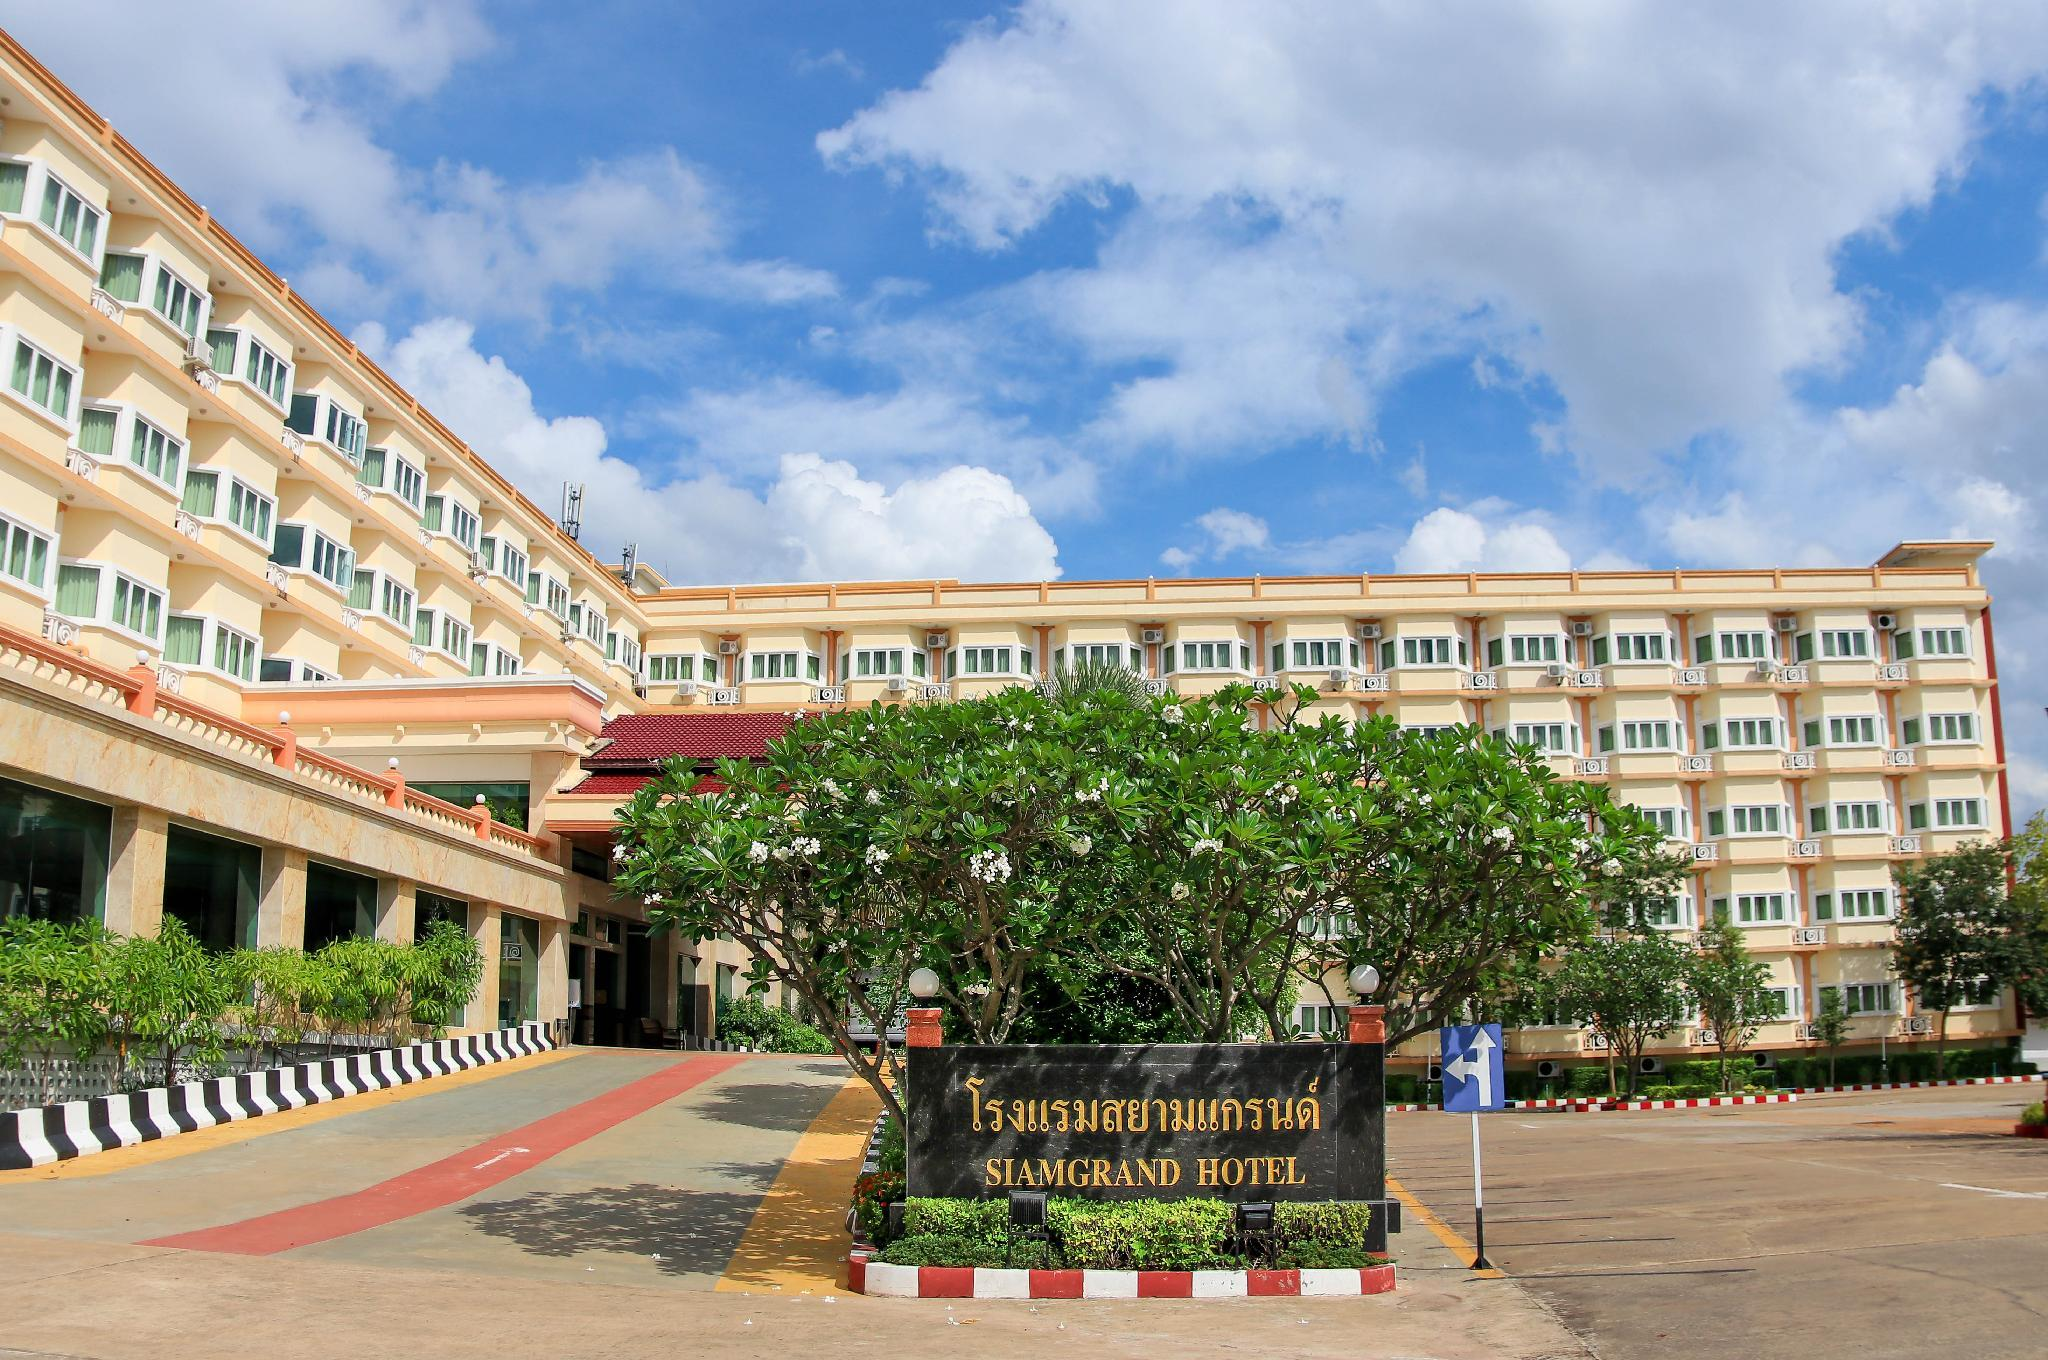 Siamgrand Hotel, Muang Udon Thani